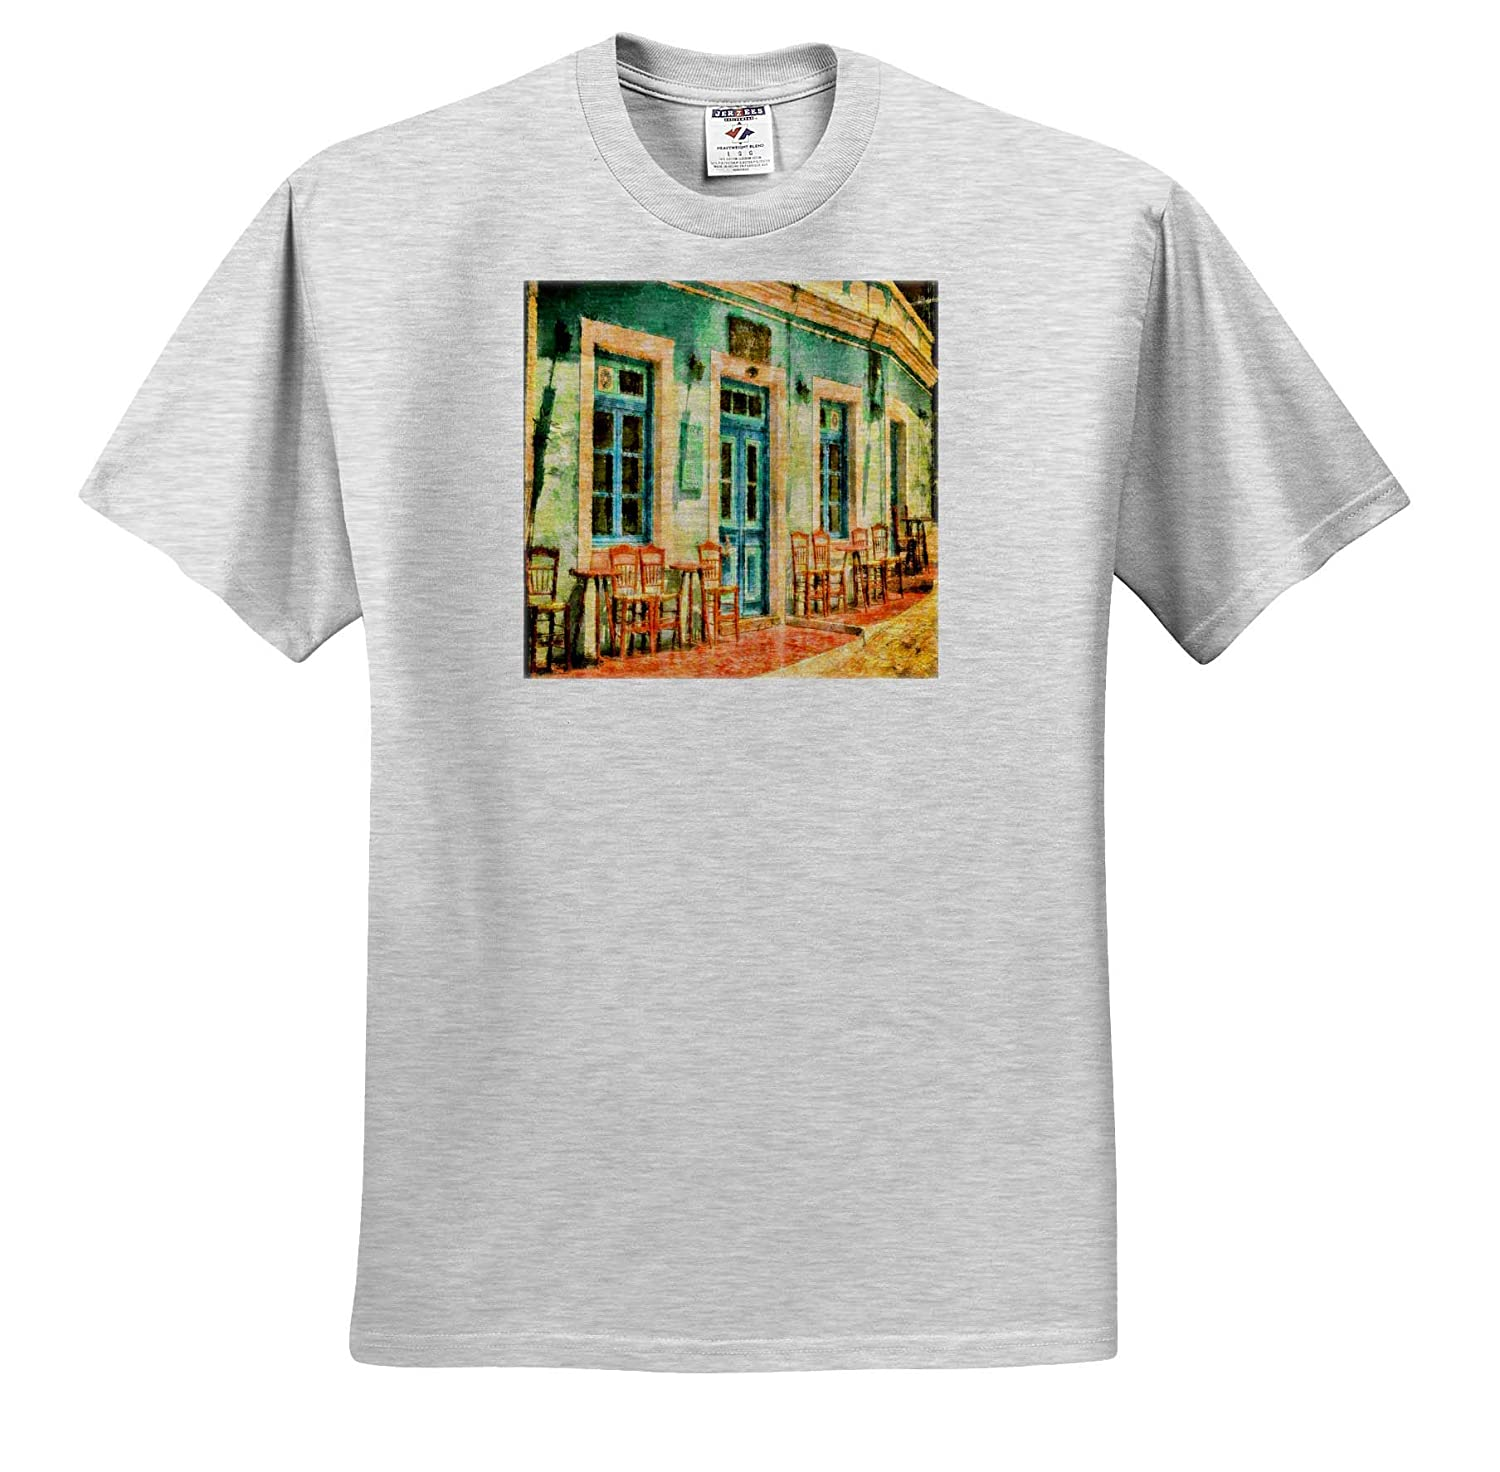 T-Shirts Image of Outdoor Caf/é in Greece Painting 3dRose Lens Art by Florene Watercolor Art